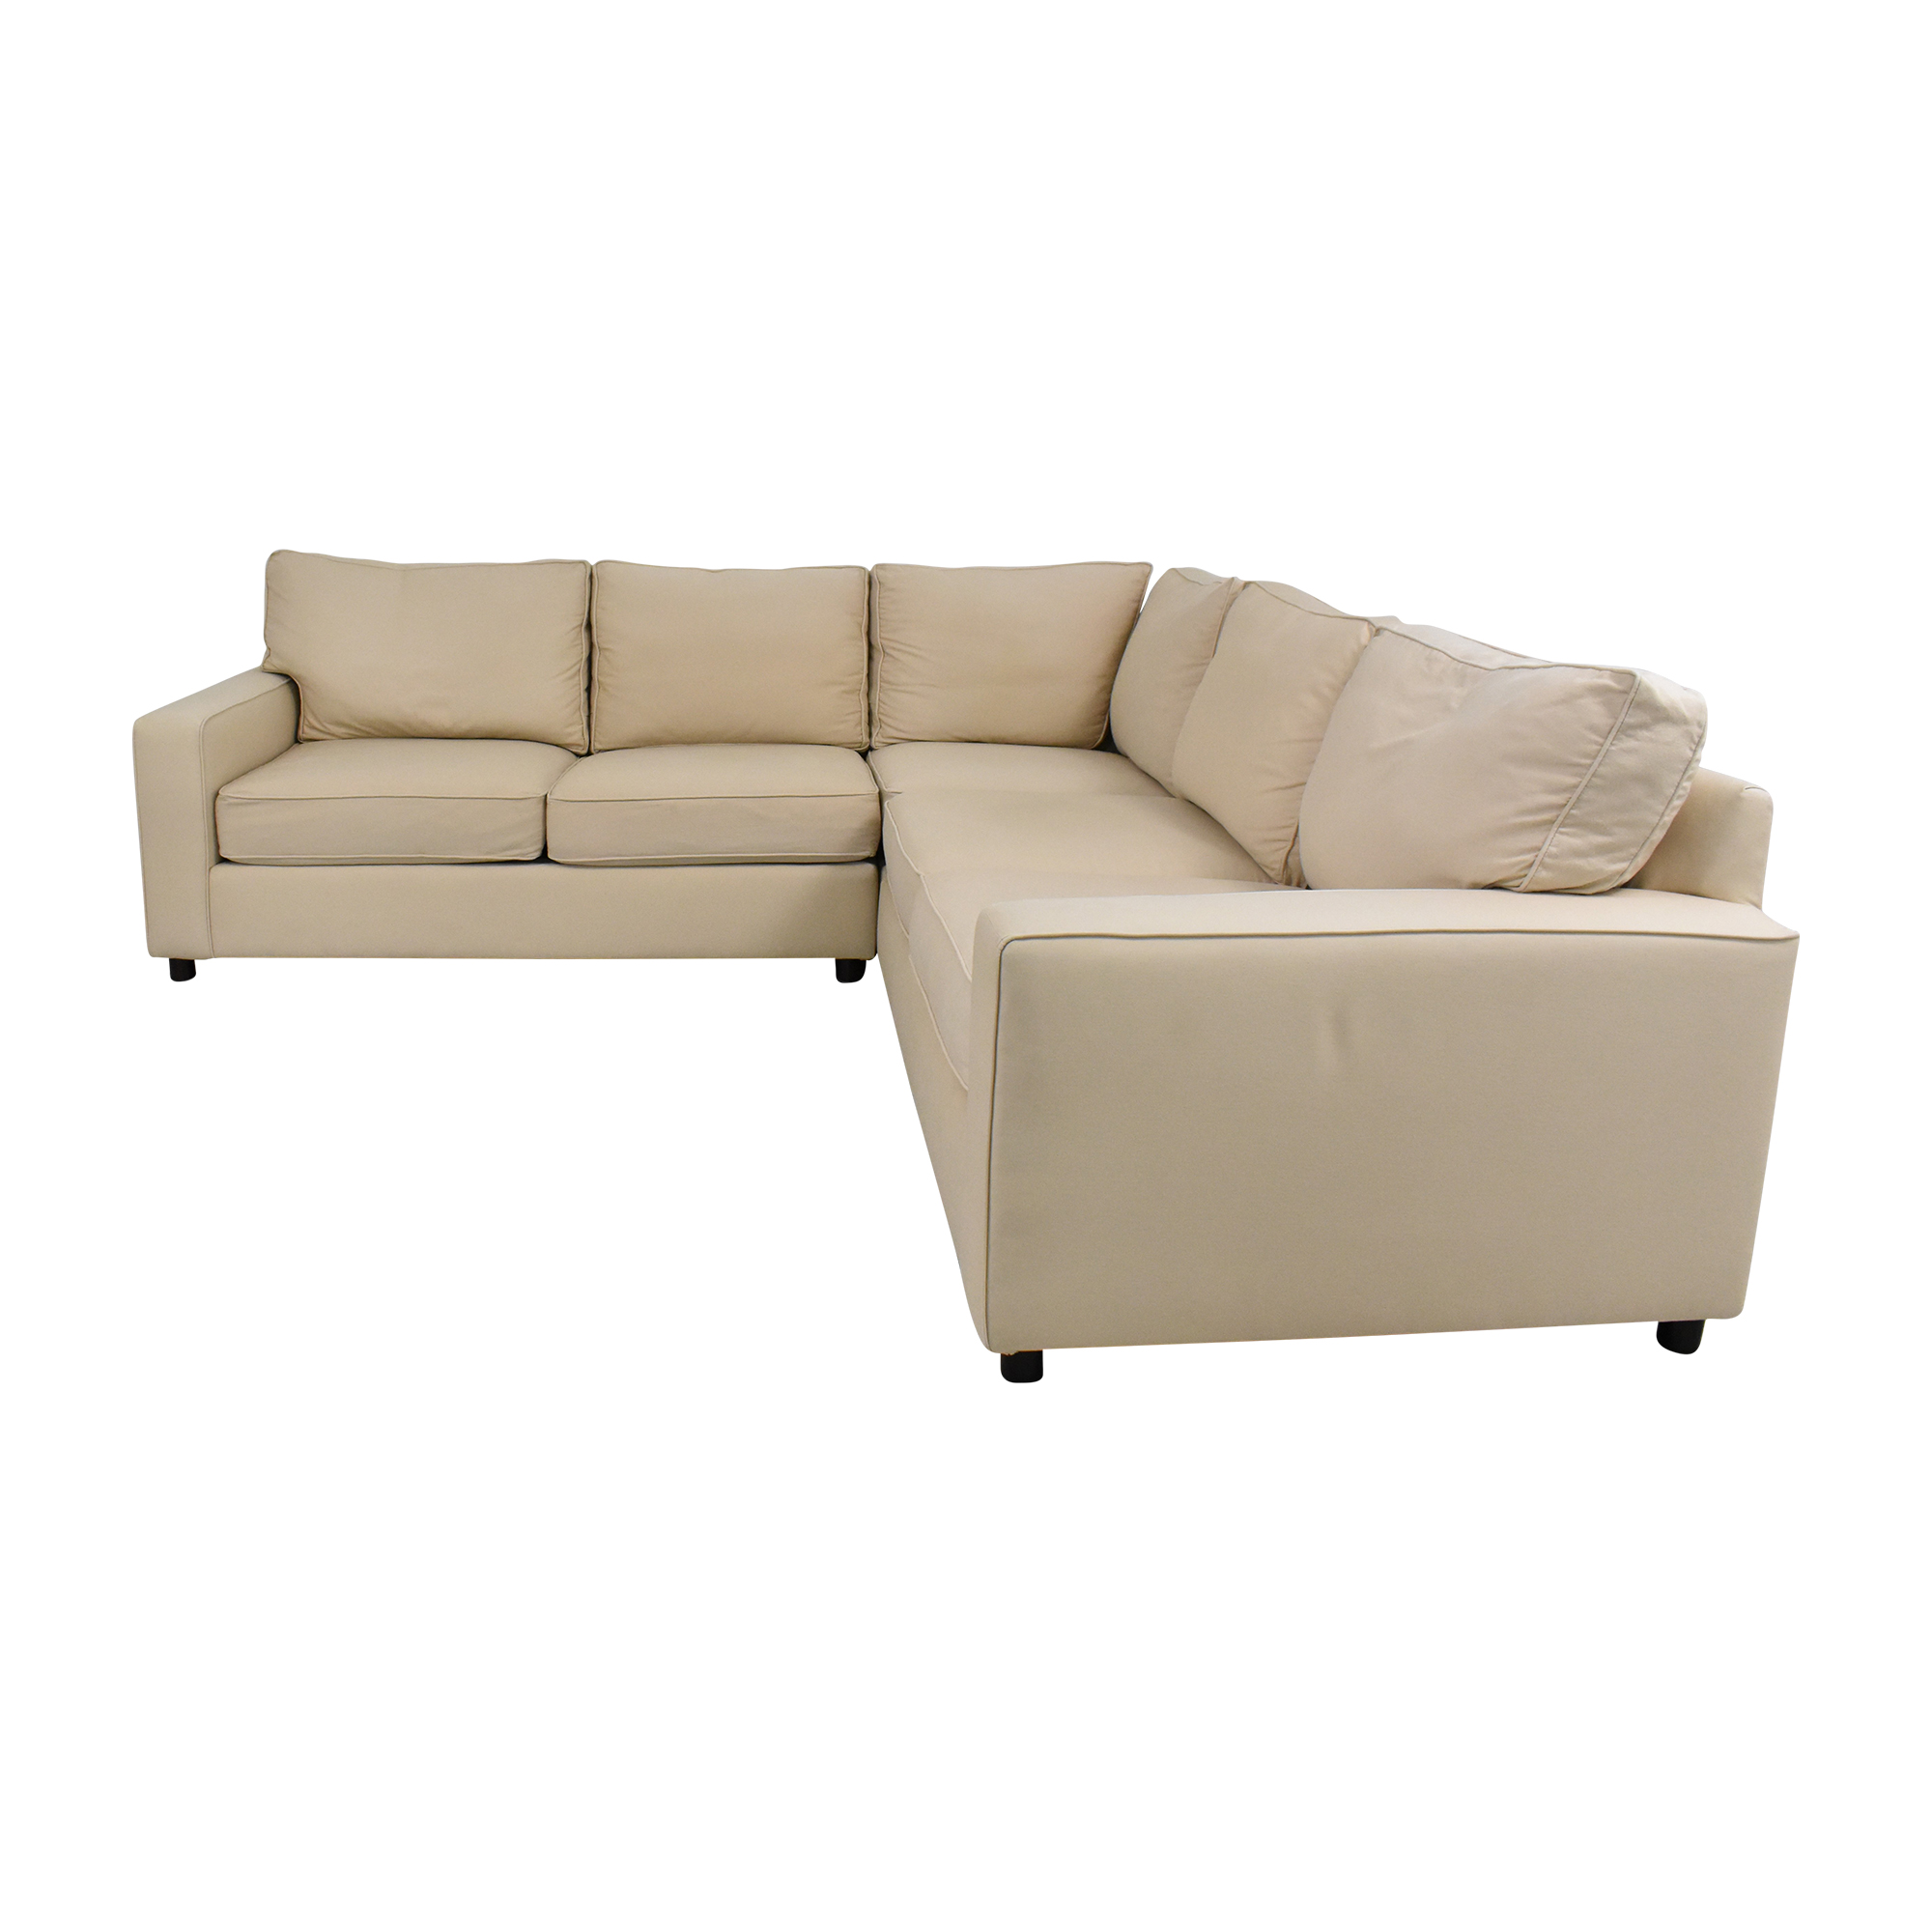 73 off pottery barn pottery barn pb comfort square arm upholstered 3 piece l sectional sofas